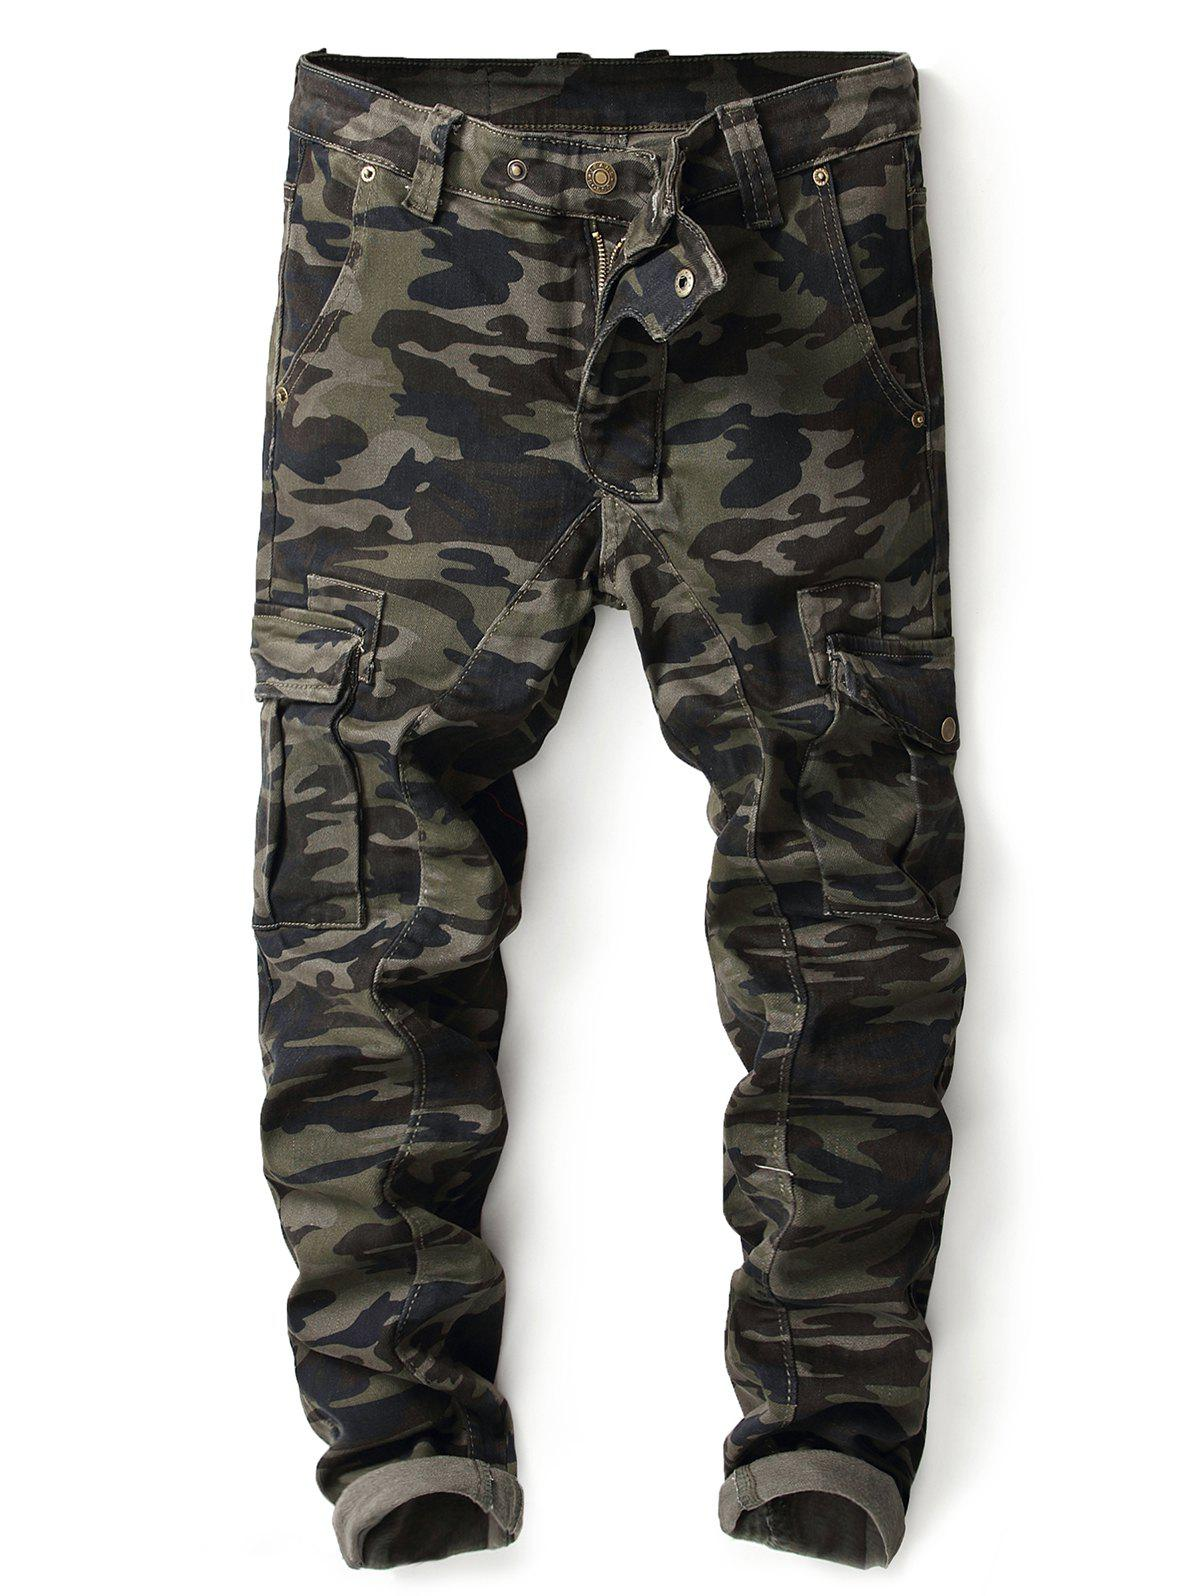 Camo Zip Fly Multi-pocket Jeans - ACU CAMOUFLAGE 34